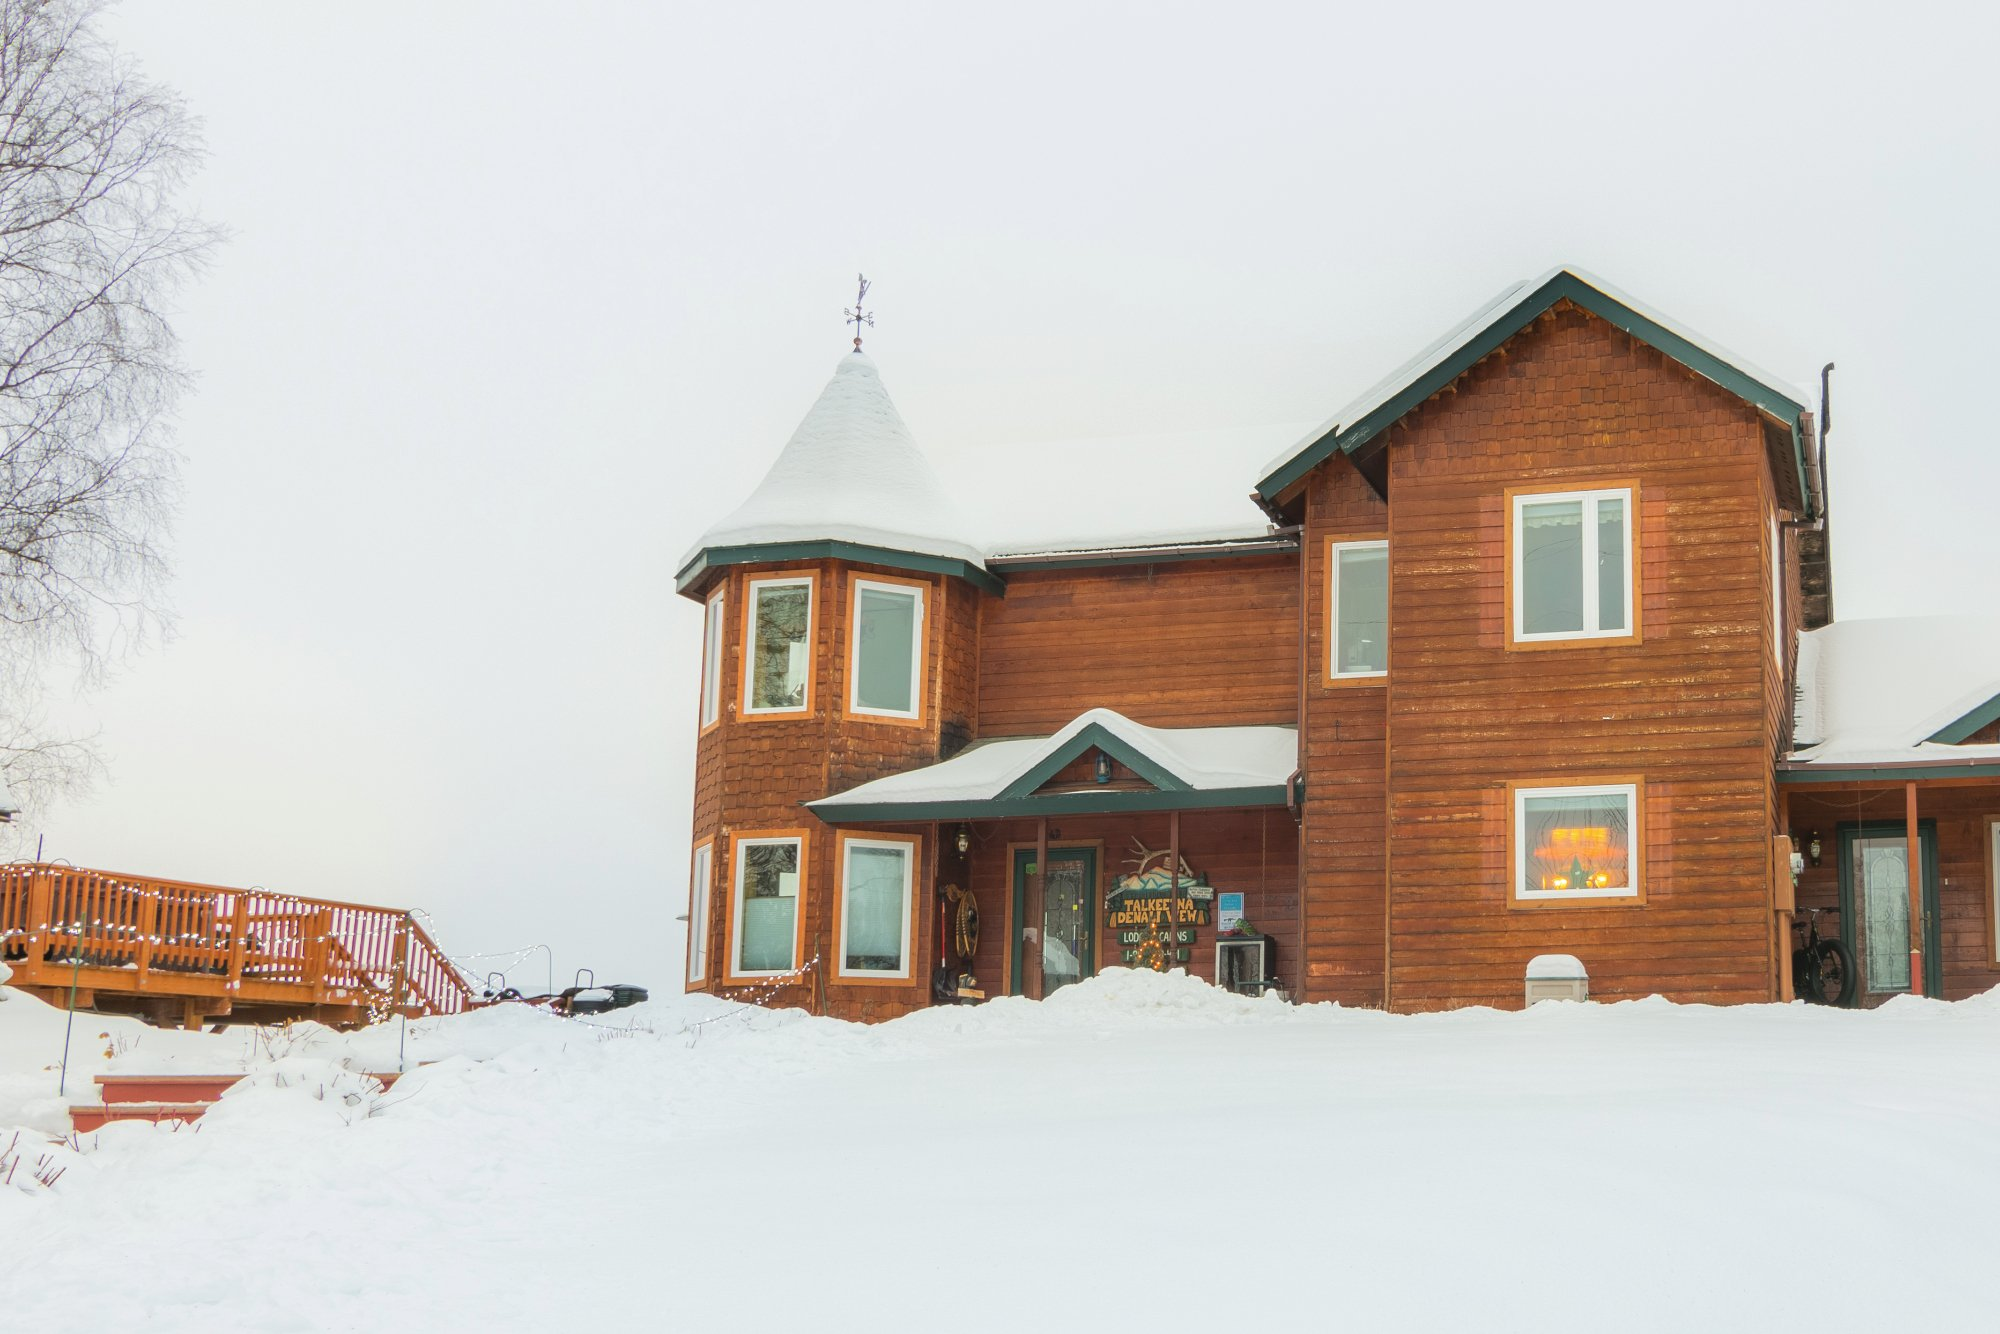 Talkeetna Denali View Lodge & Cabins